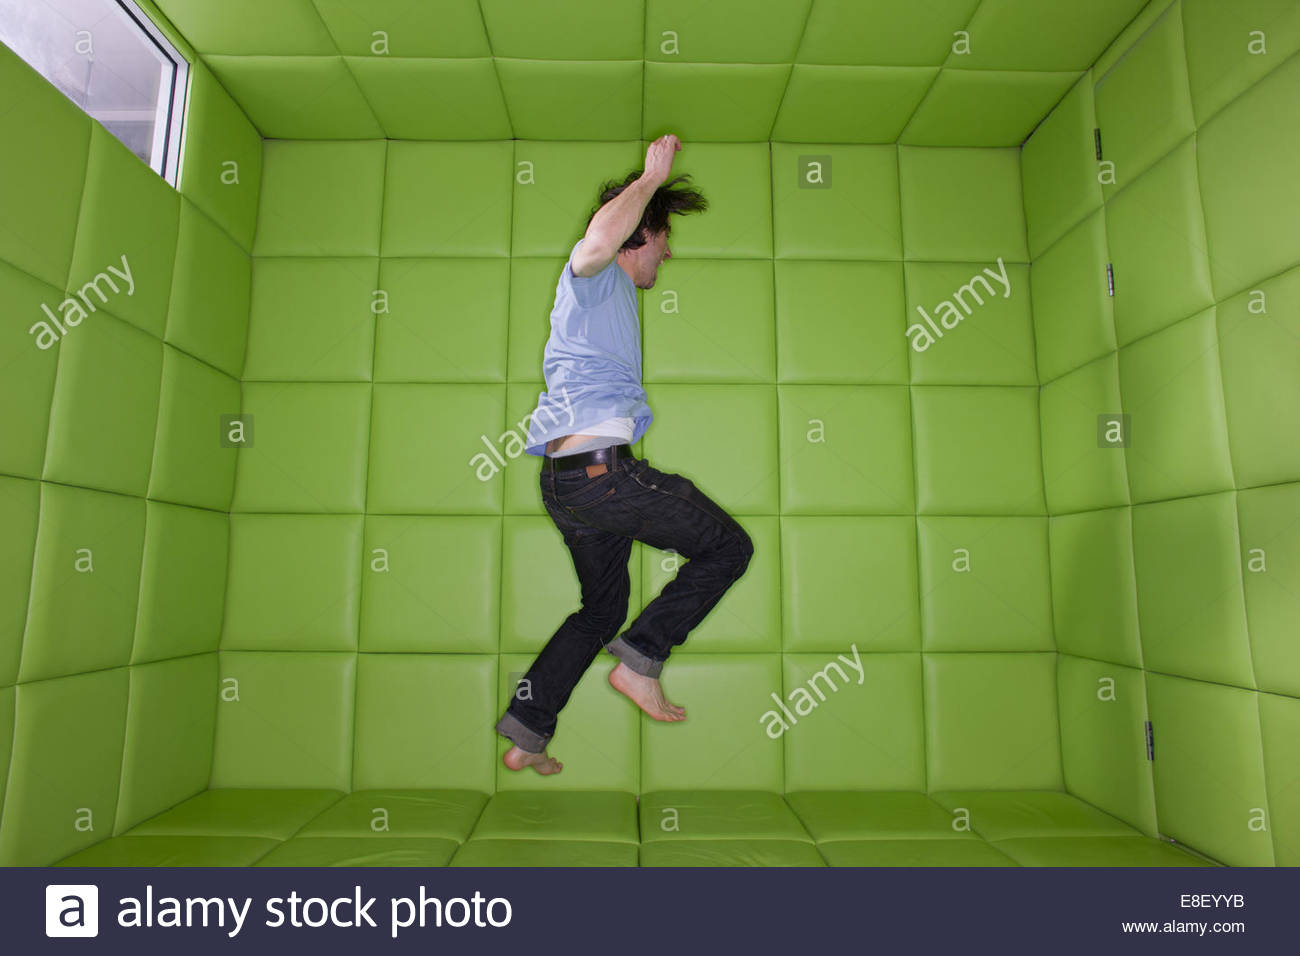 Man dancing in padded room - Stock Image